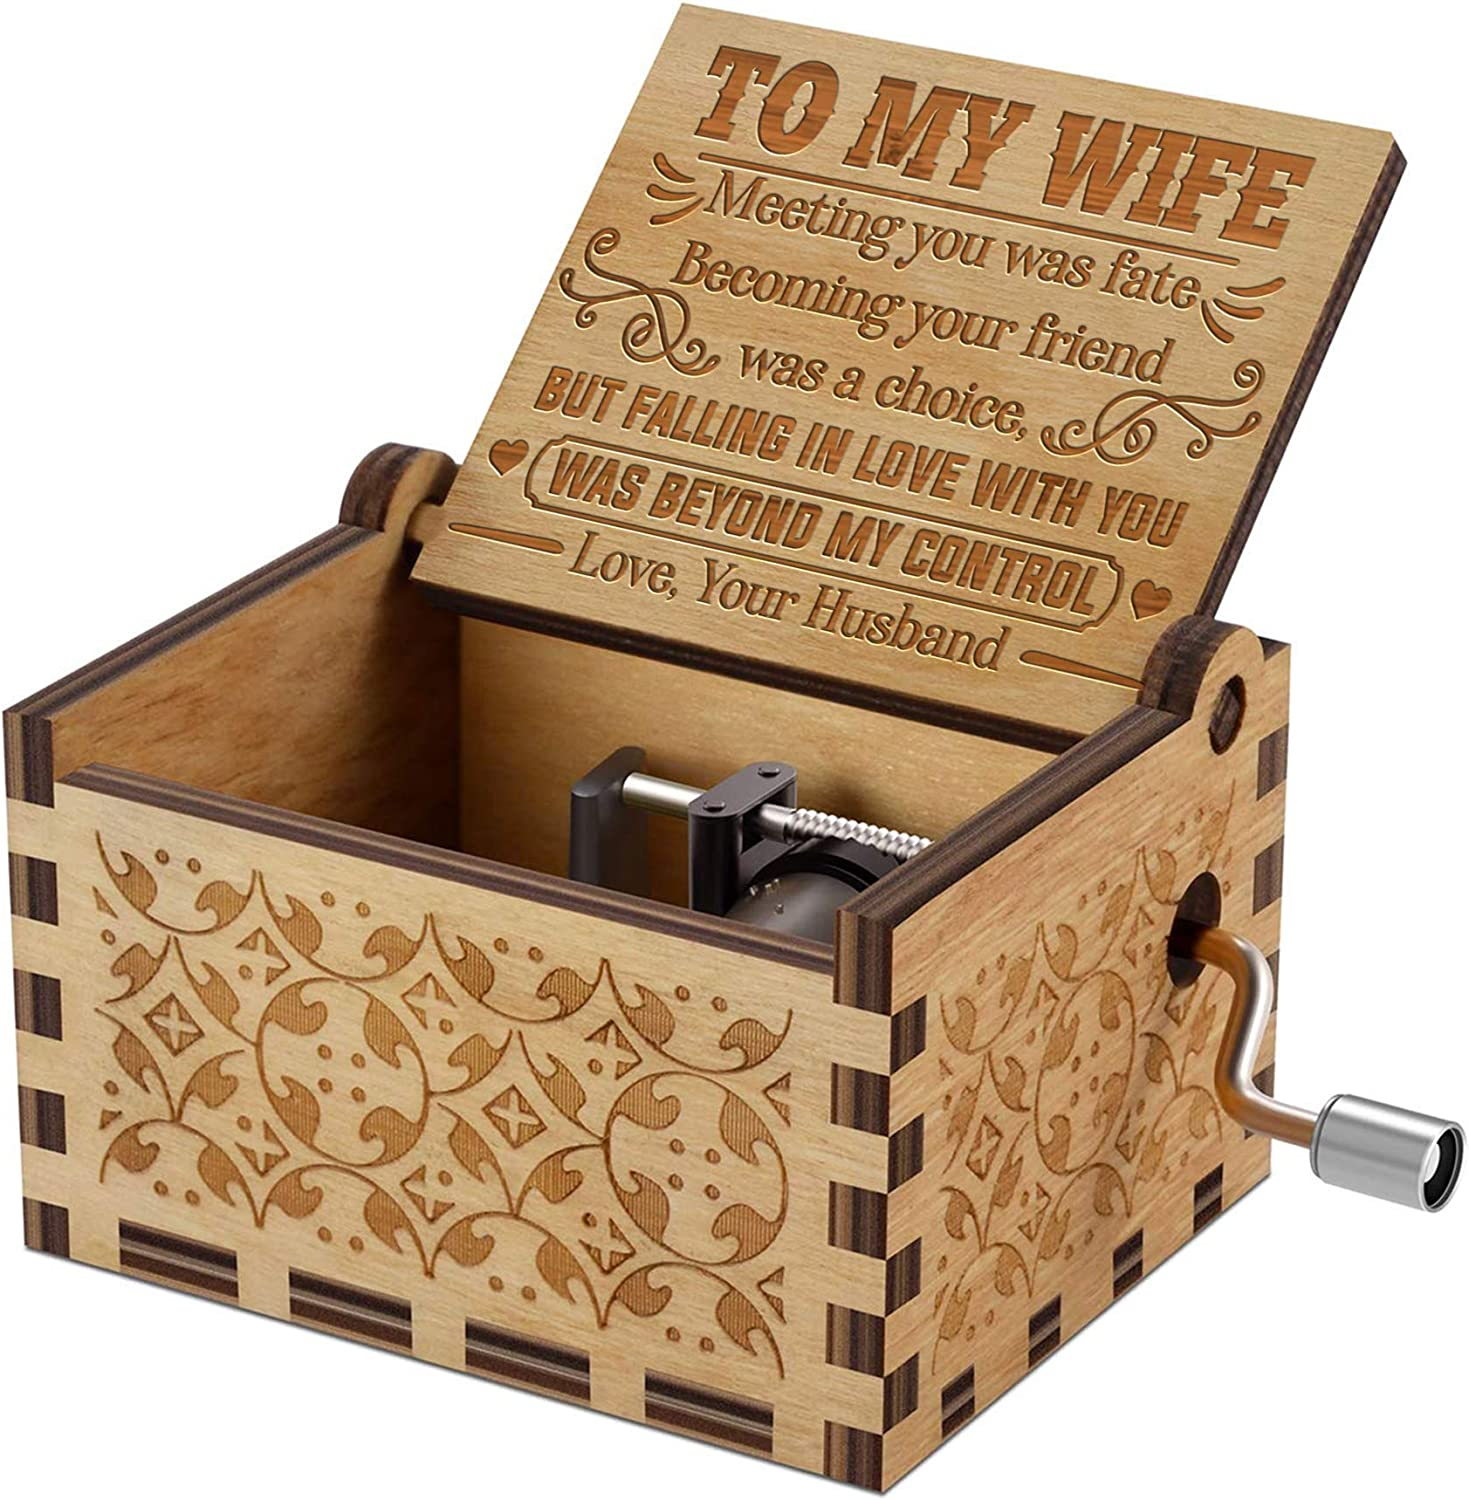 QUARTZILY Caja de música grabada You Are my Sunshine, Regalo para Esposa de Marido, Becoming Your Friend Was a Choice (AMZ-MB-051-HusWif): Amazon.es: Hogar